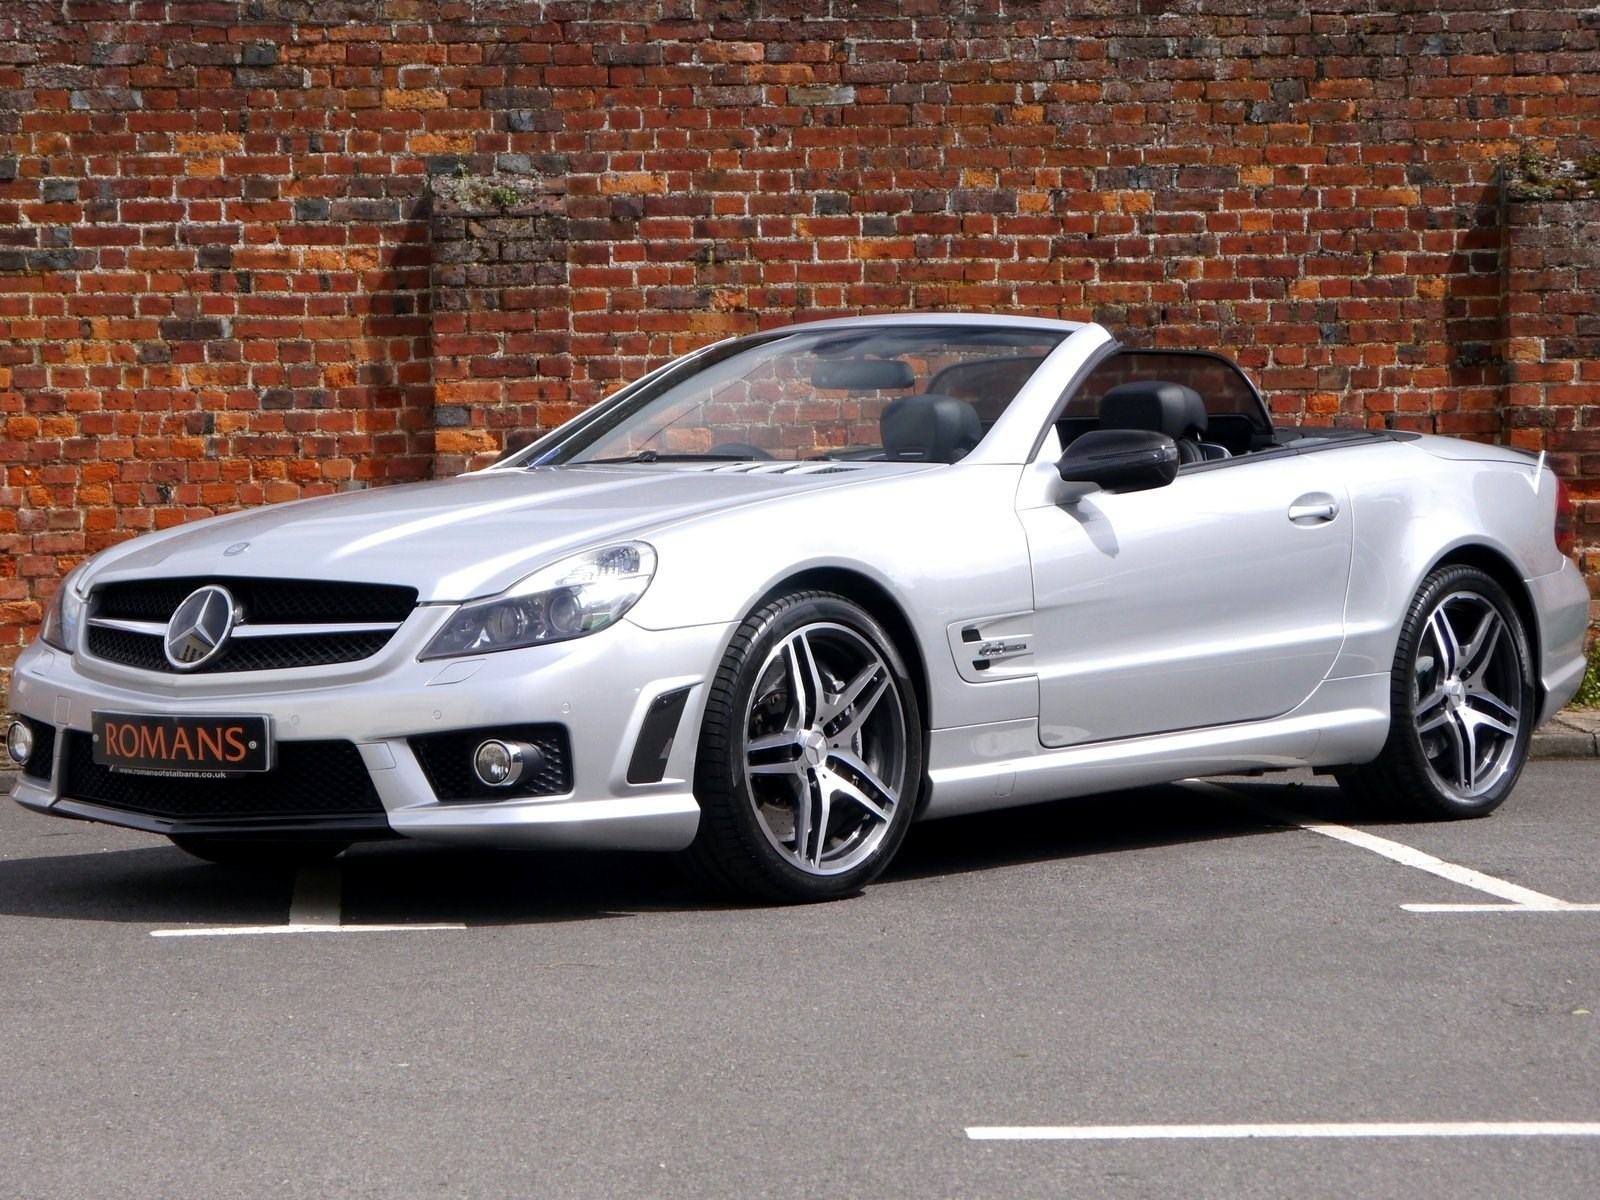 mercedes benz sl63 amg speedshift mct auto amg performance package carbon exterior package. Black Bedroom Furniture Sets. Home Design Ideas